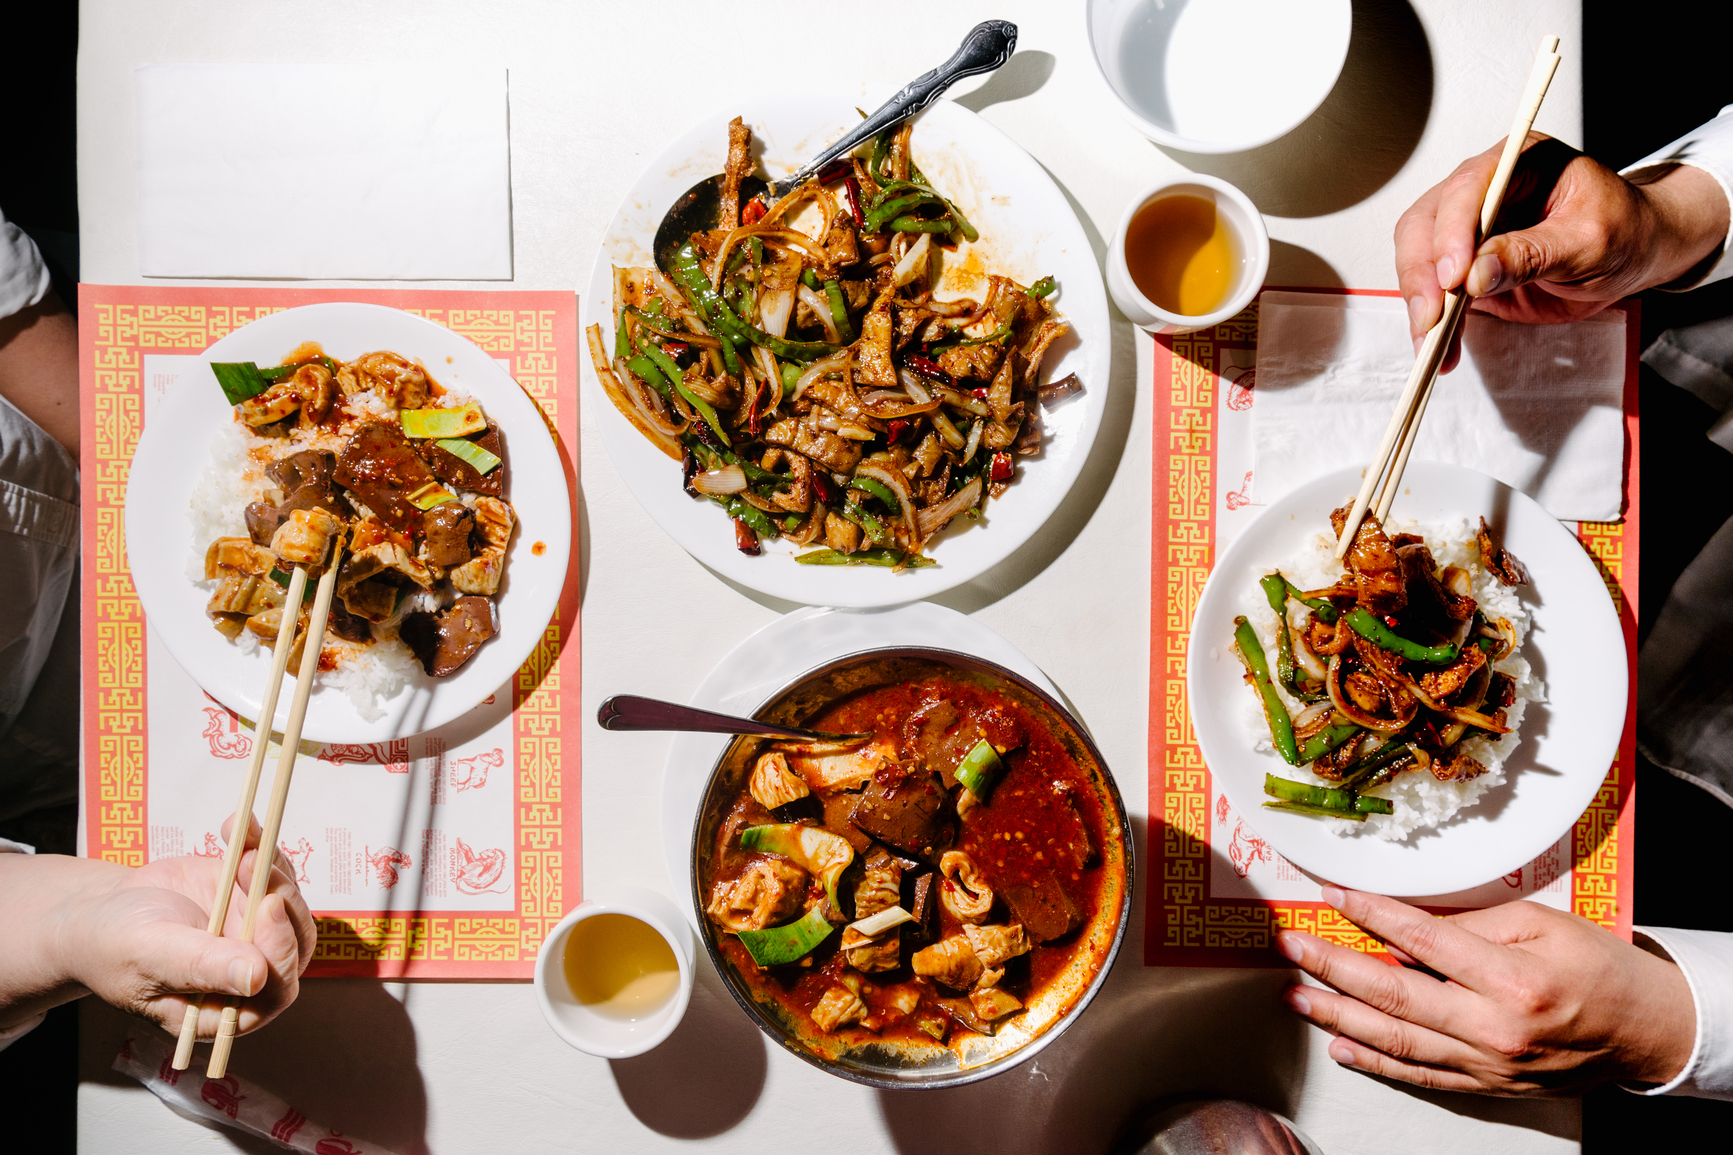 Stock photo of more adventurous style of traditional Chinese food shot inside of a Chinese restaurant in the USA.